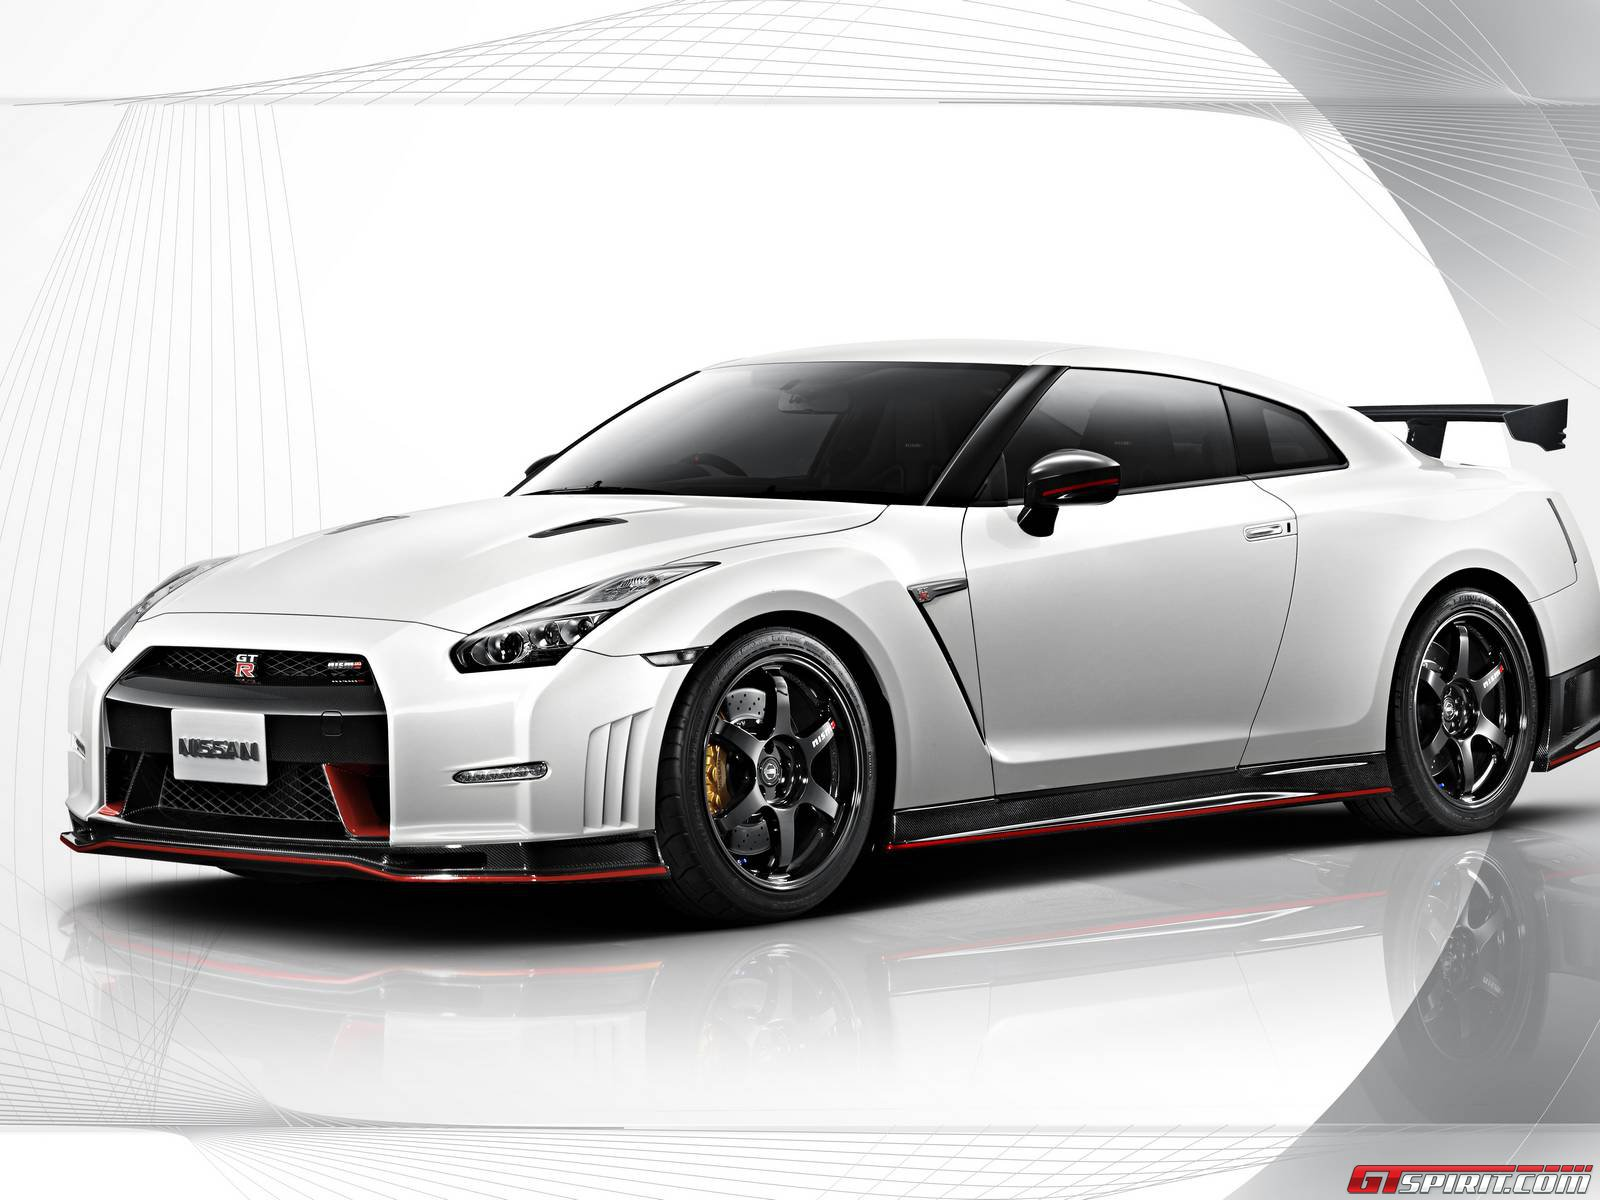 nissan gt r nismo gt500 and zeod rc to headline tokyo. Black Bedroom Furniture Sets. Home Design Ideas